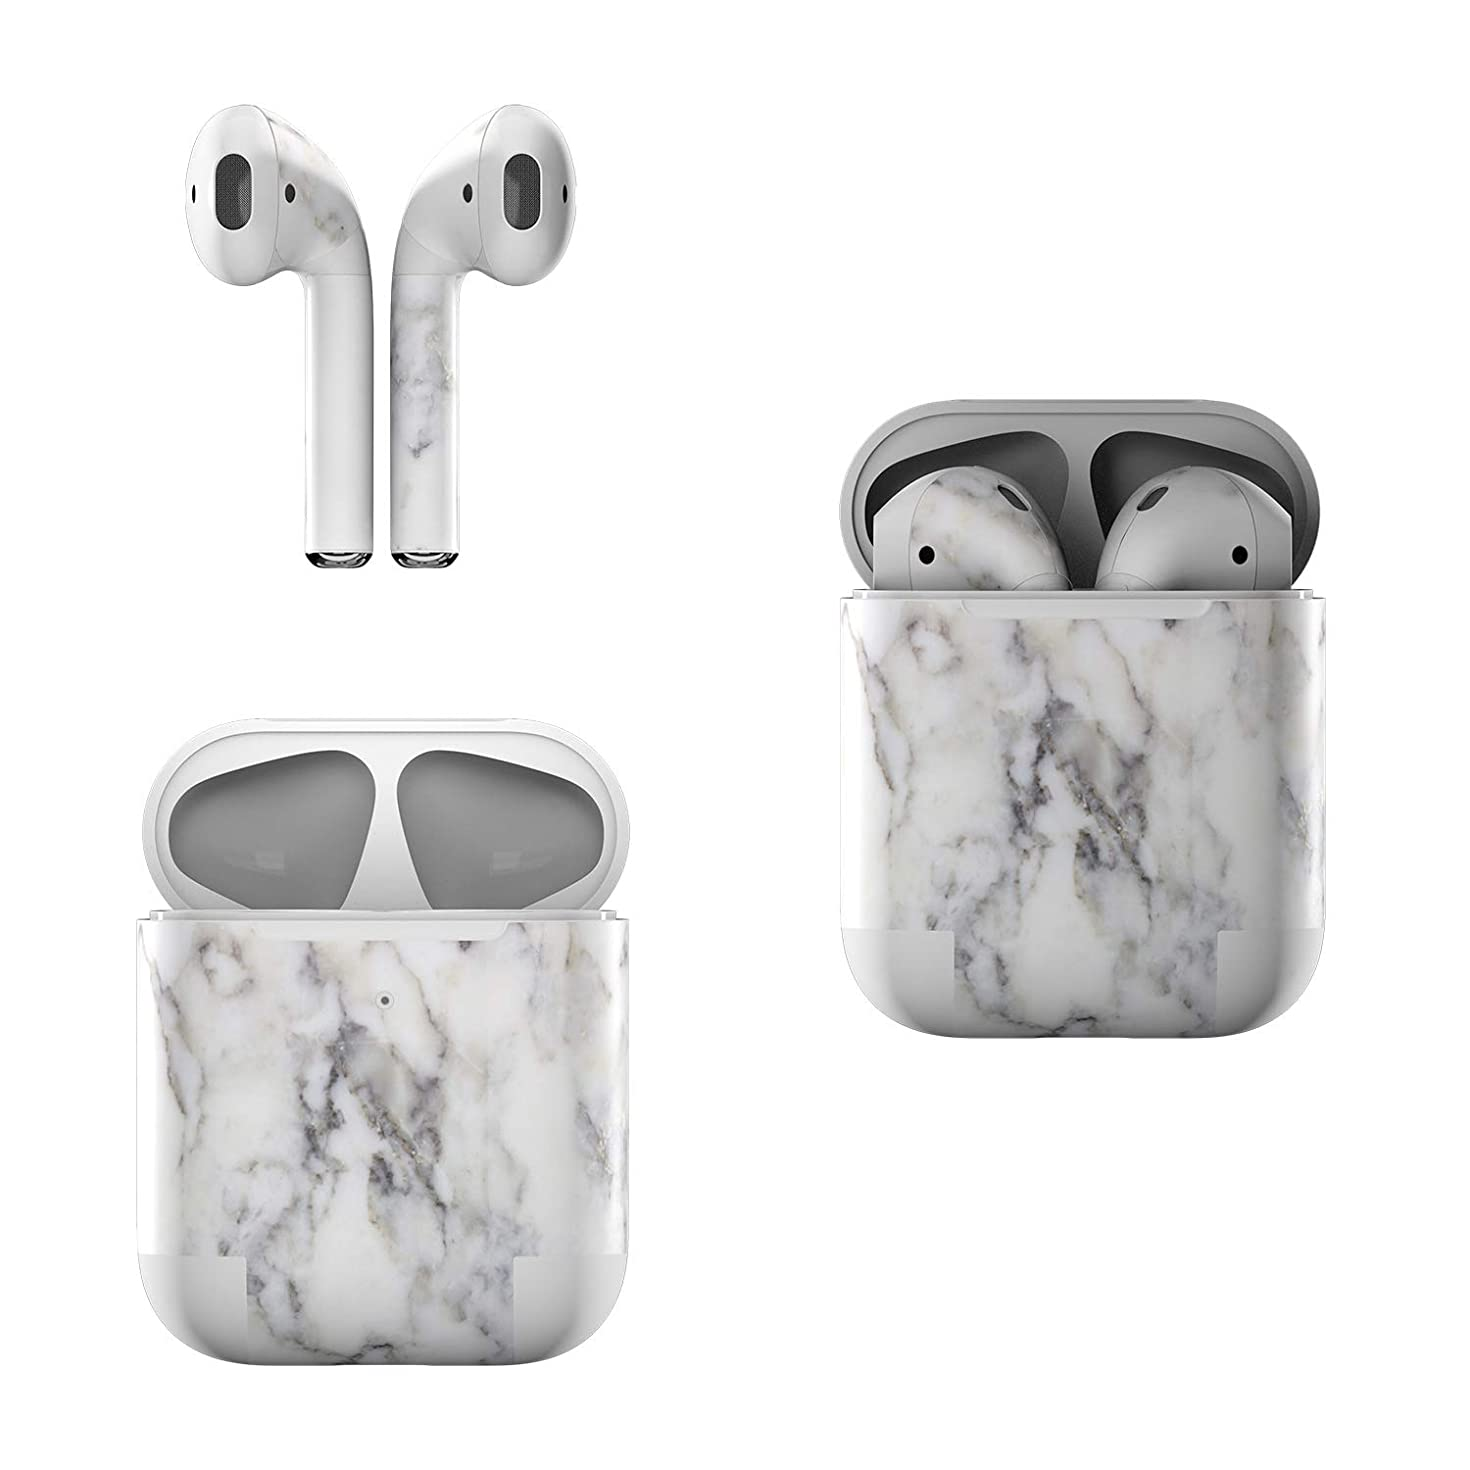 Skin Decals for Apple AirPods - White Marble - Sticker Wrap Fits 1st and 2nd Generation